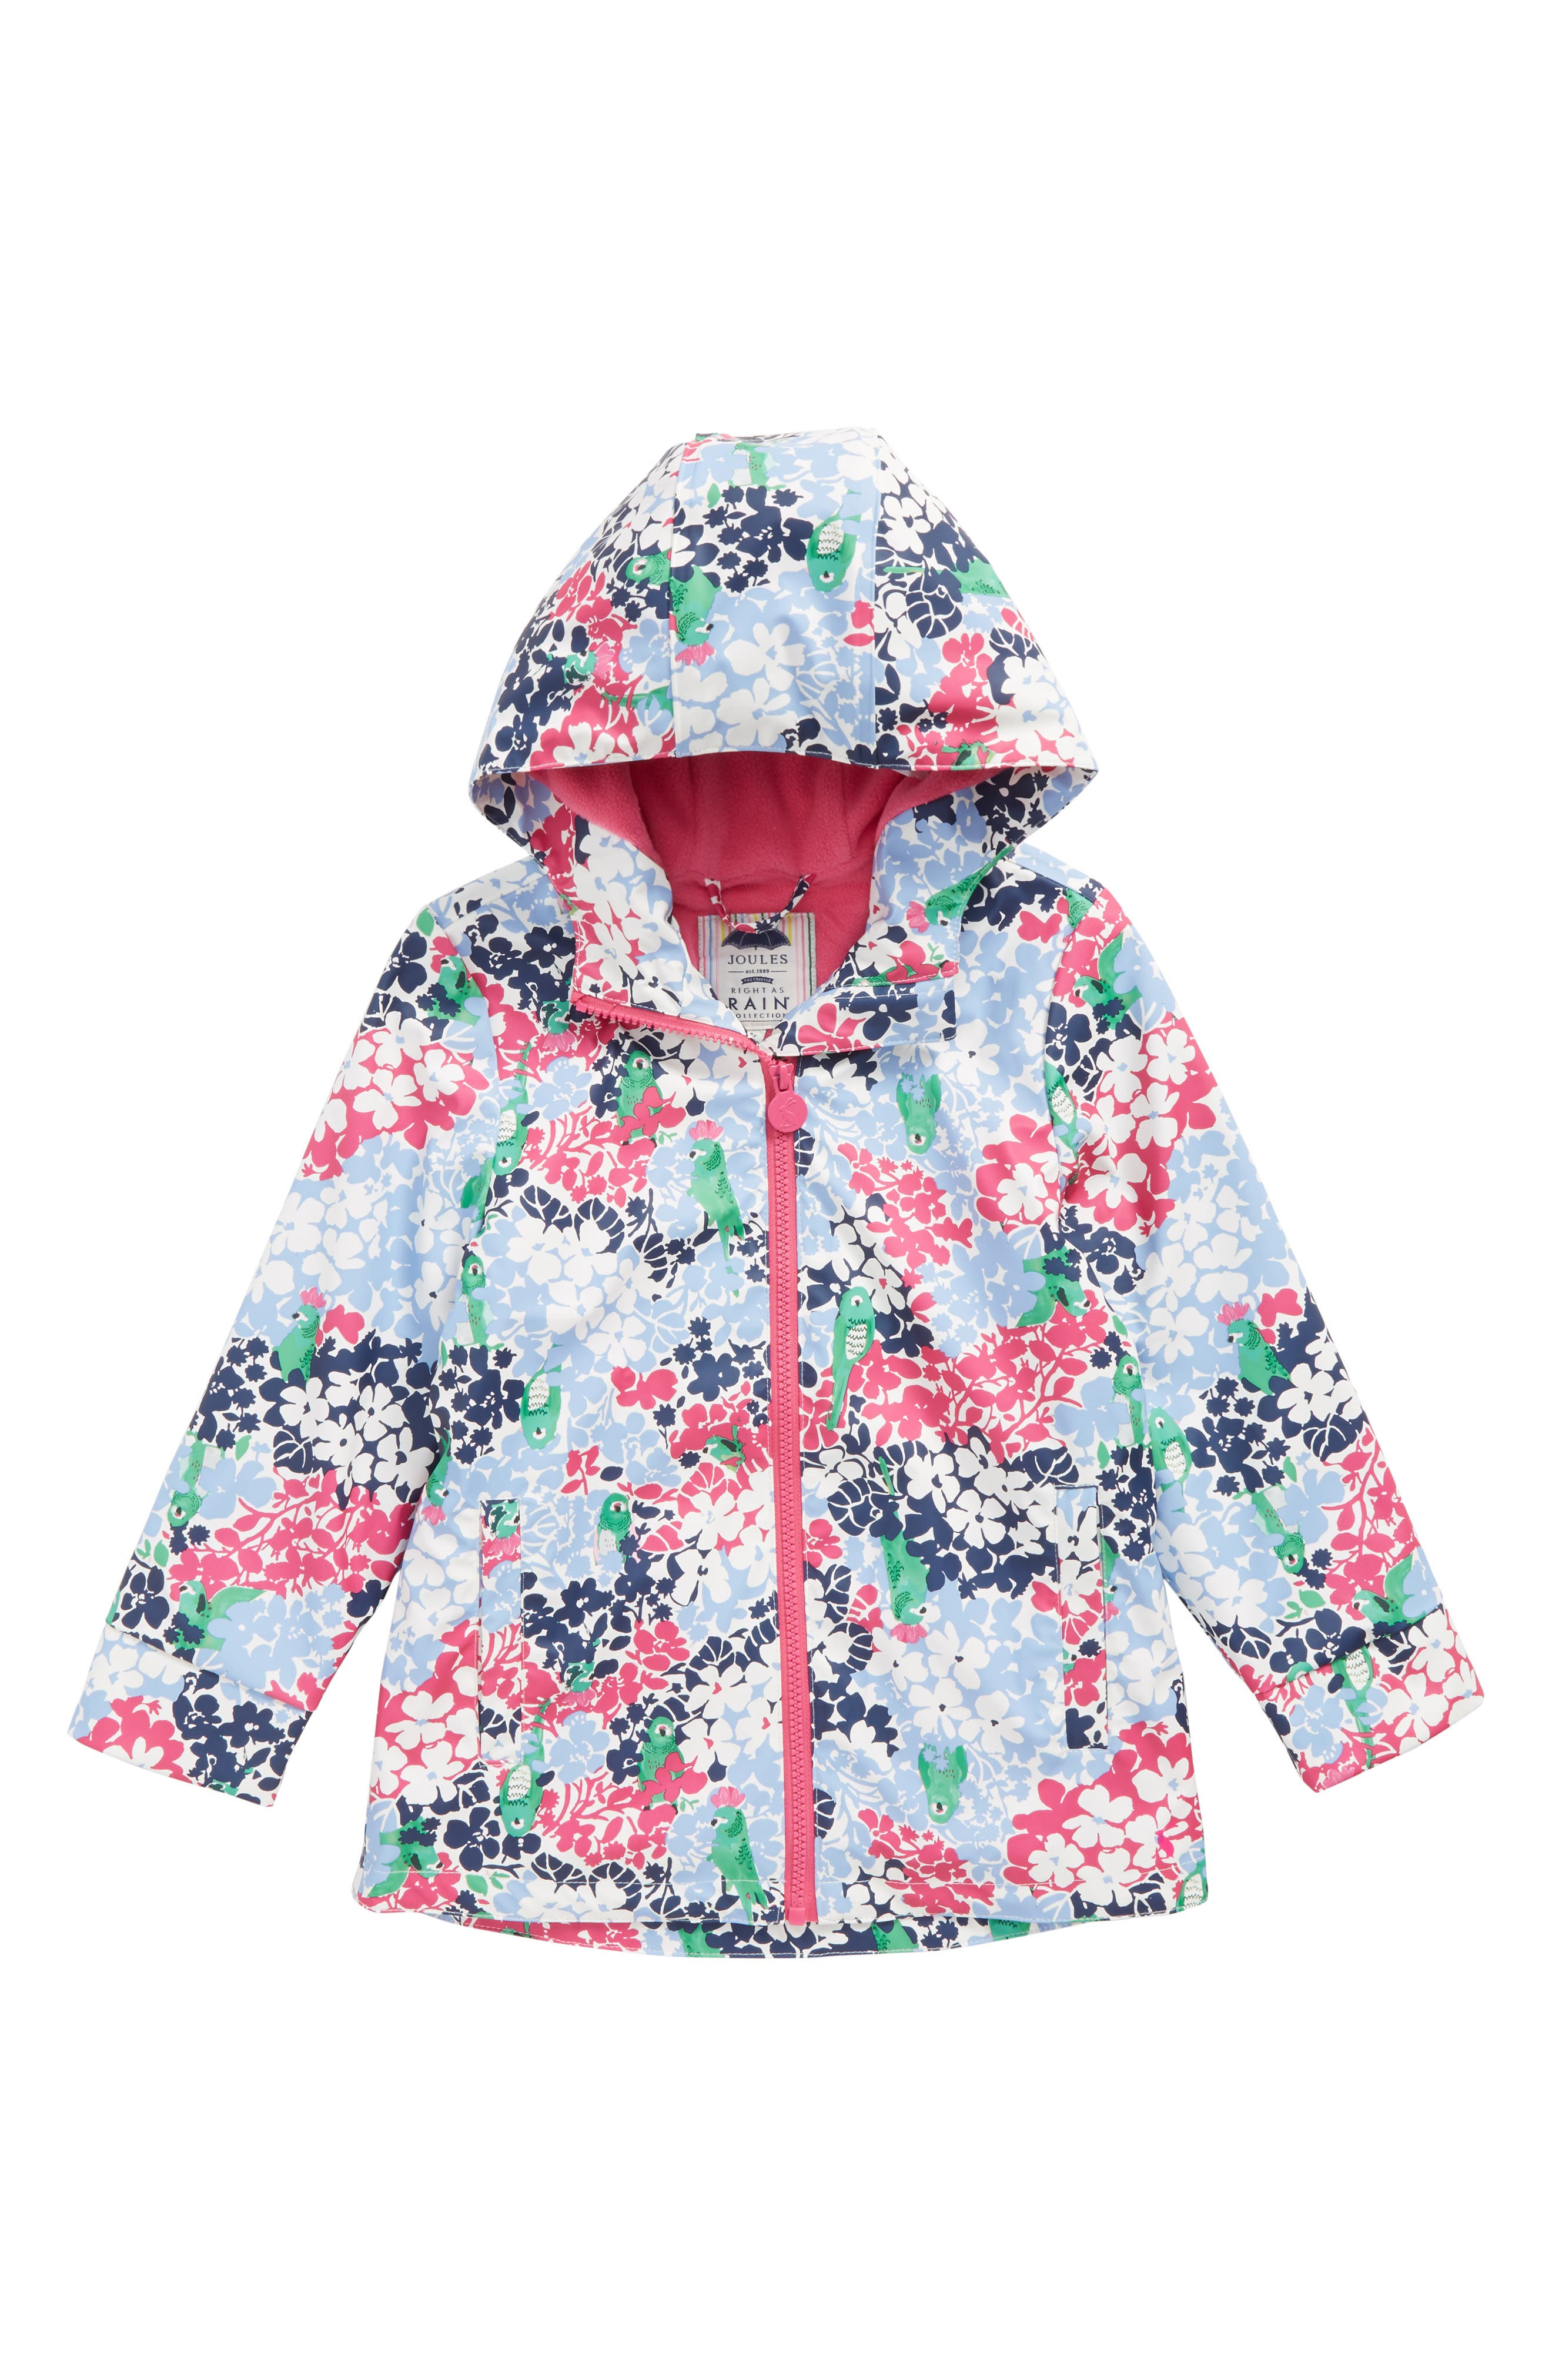 Alternate Image 1 Selected - Joules Fleece Lined Rain Jacket (Toddler Girls & Little Girls)